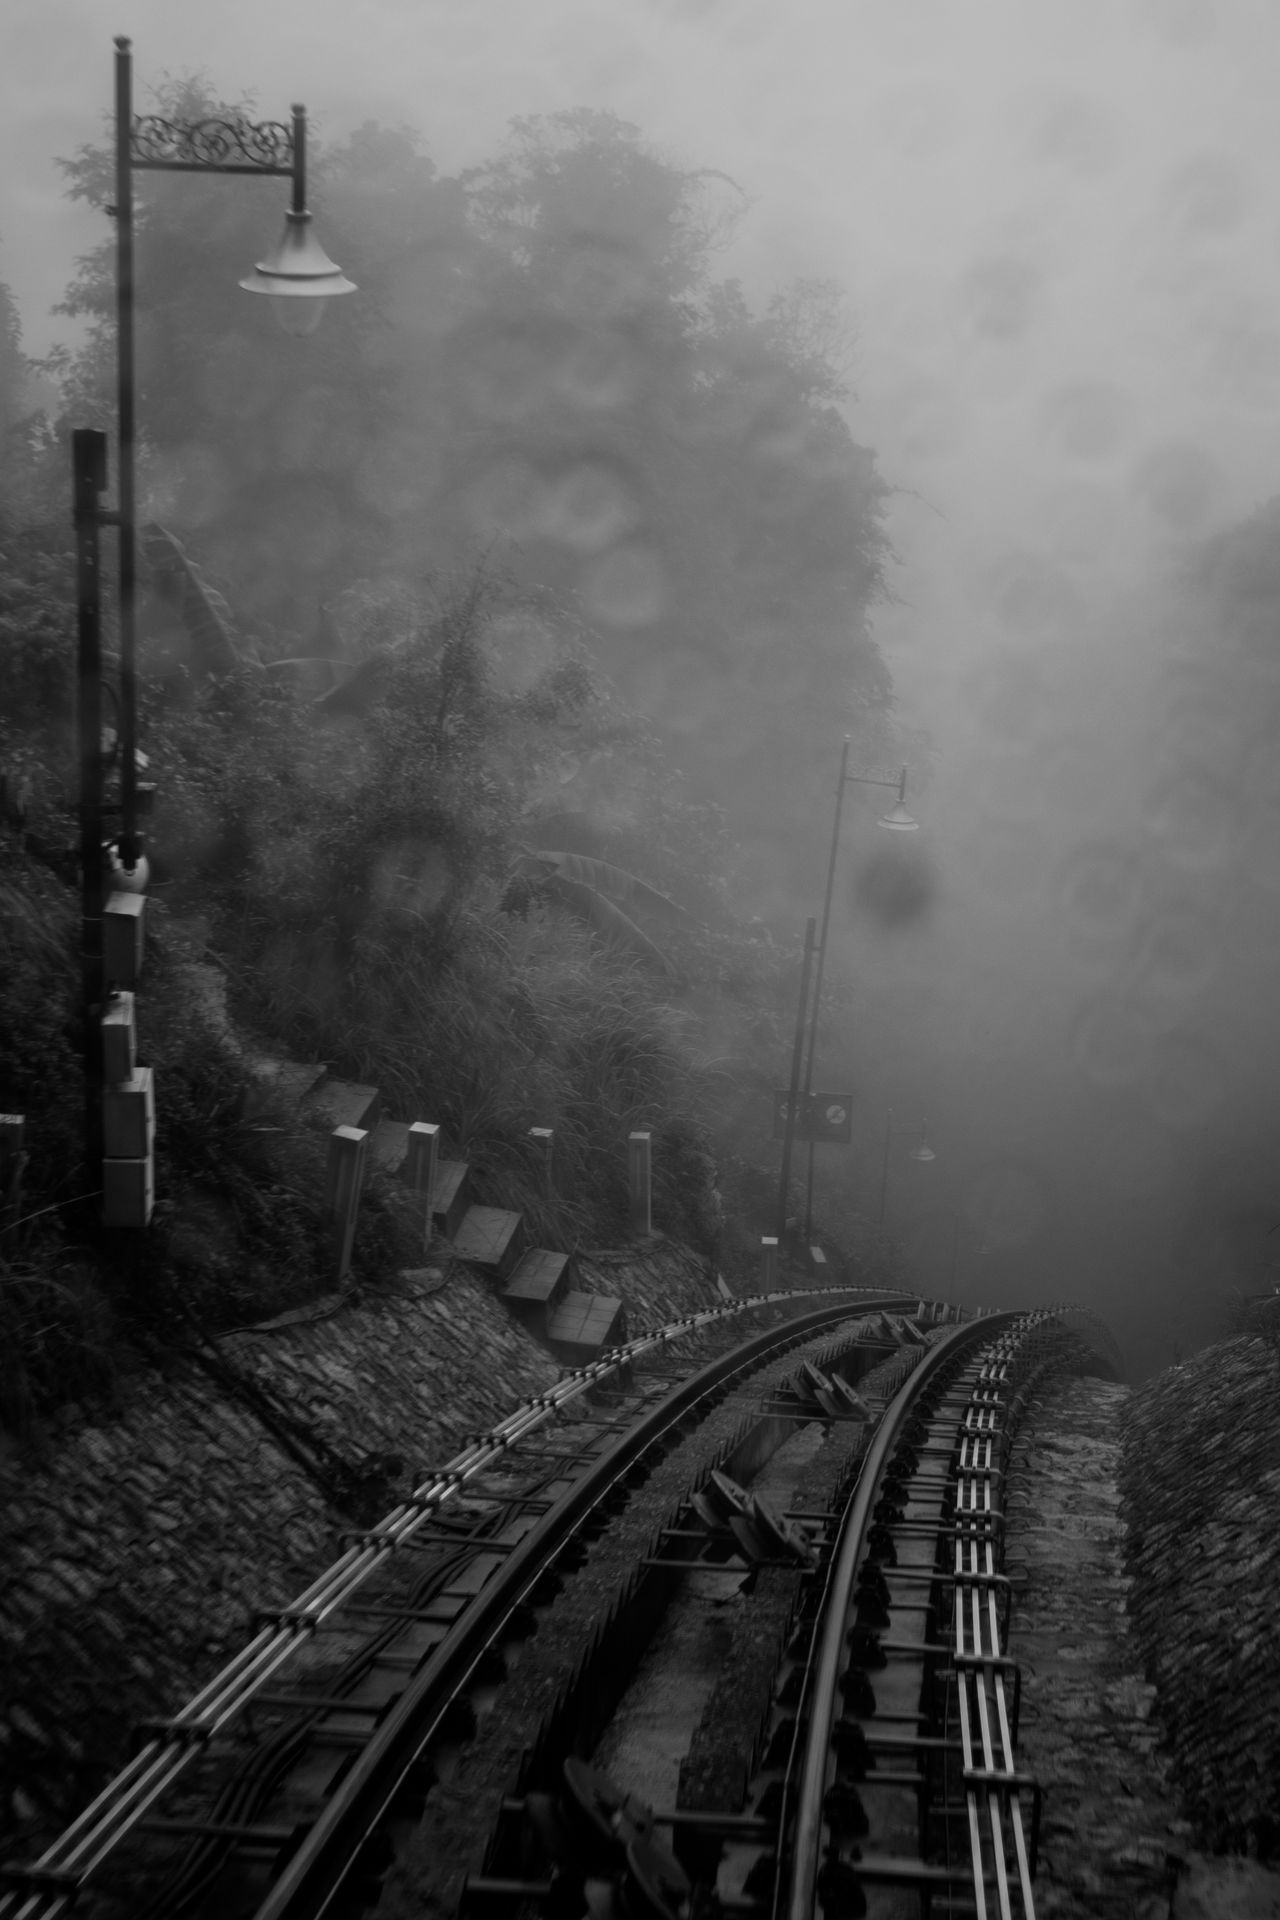 Black And White Blackandwhite Cloud - Sky Diminishing Perspective EyeEm Best Shots - Black + White Foggy Foggy Morning Lamppost Outdoors Penang Penang Hill Railroad Track Railway Rain Roller Coaster Sky The Way Forward Tram Tram Tracks Vanishing Point